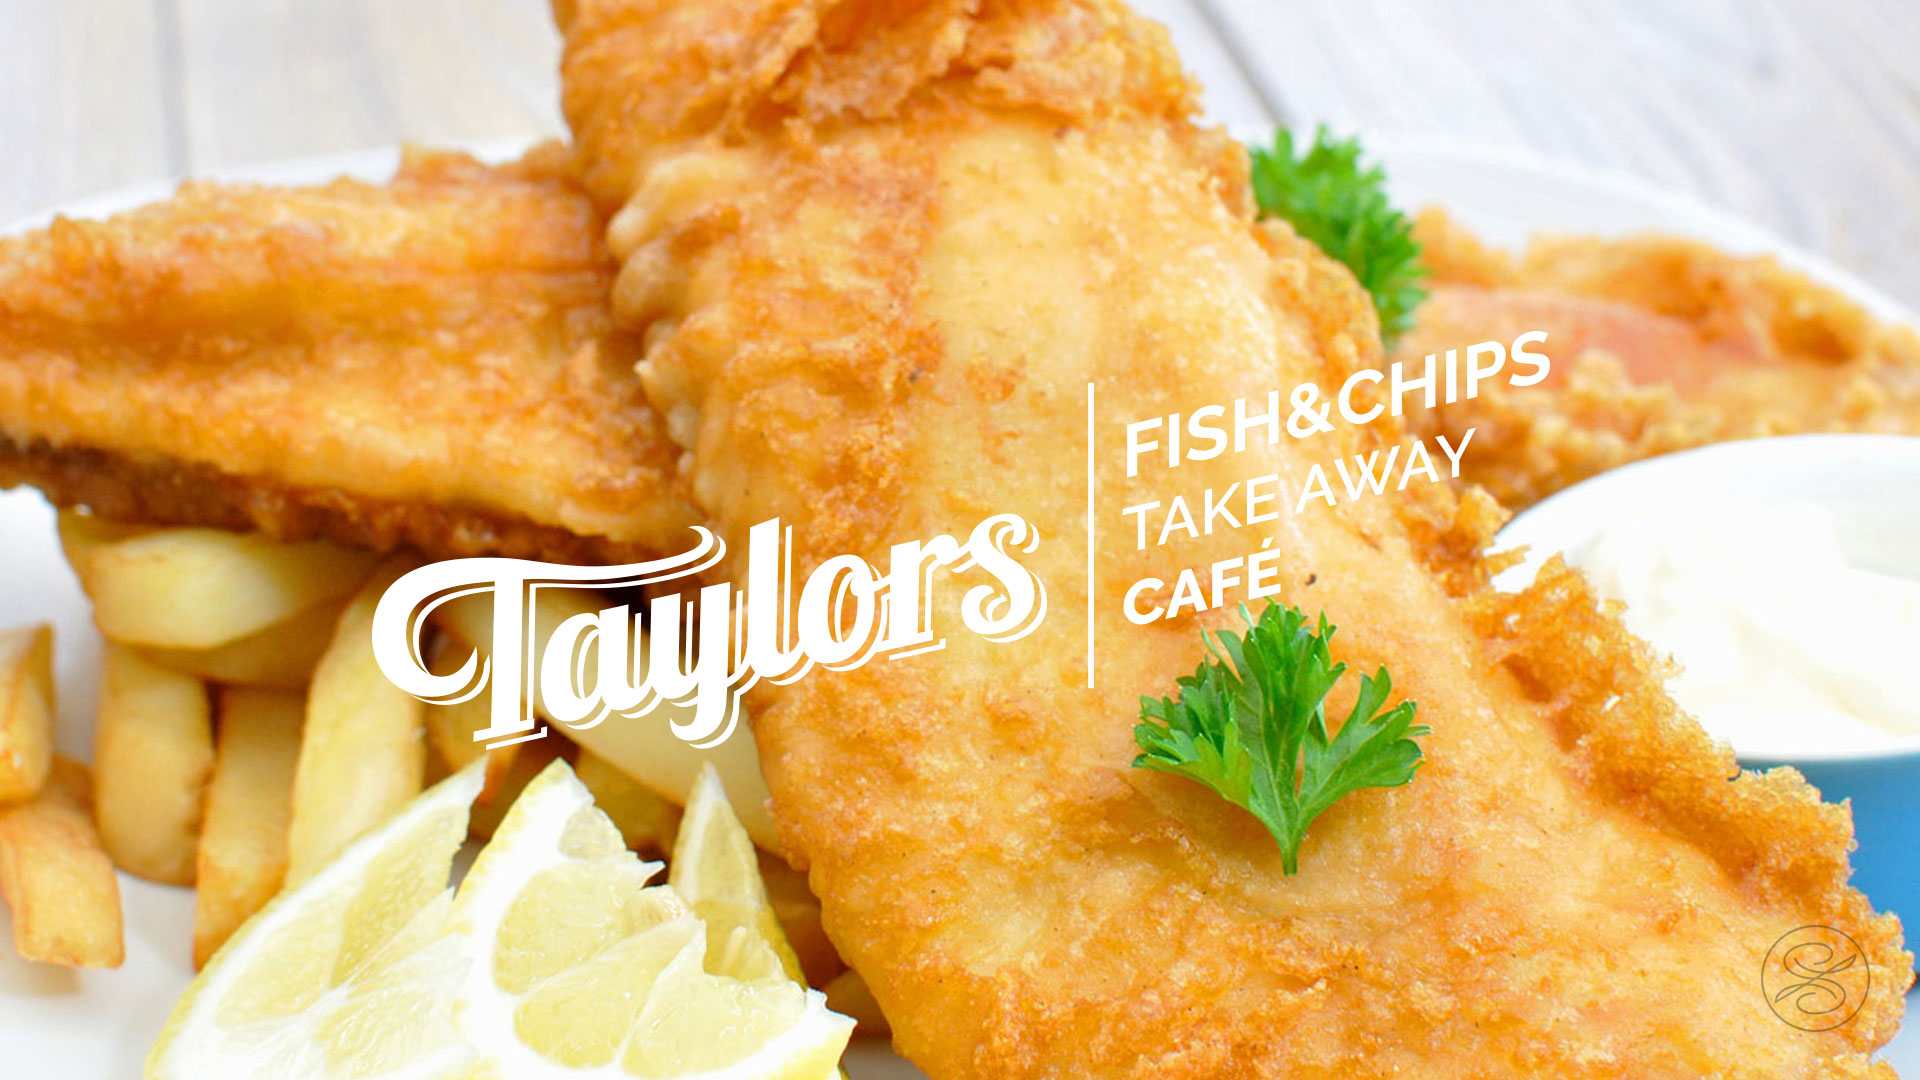 TAYLORS FISH AND CHIPS